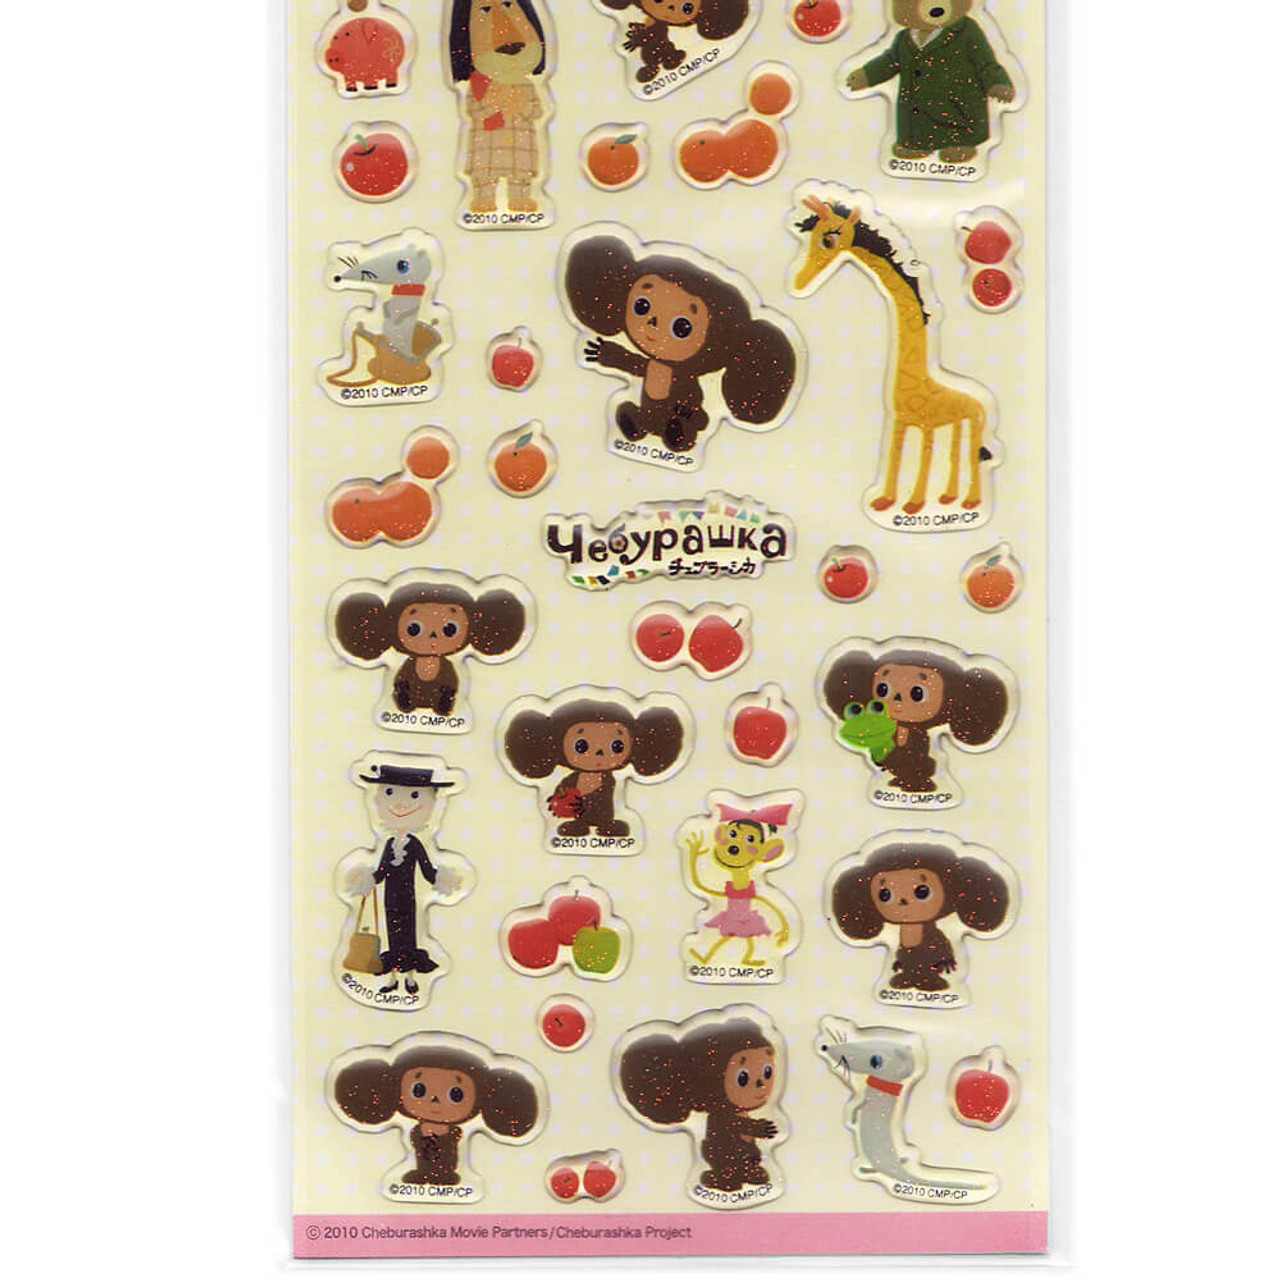 Cheburashka Yeoypawka 3D Puffy Sticker CHST03 - Zoo ( Bottom Part View )